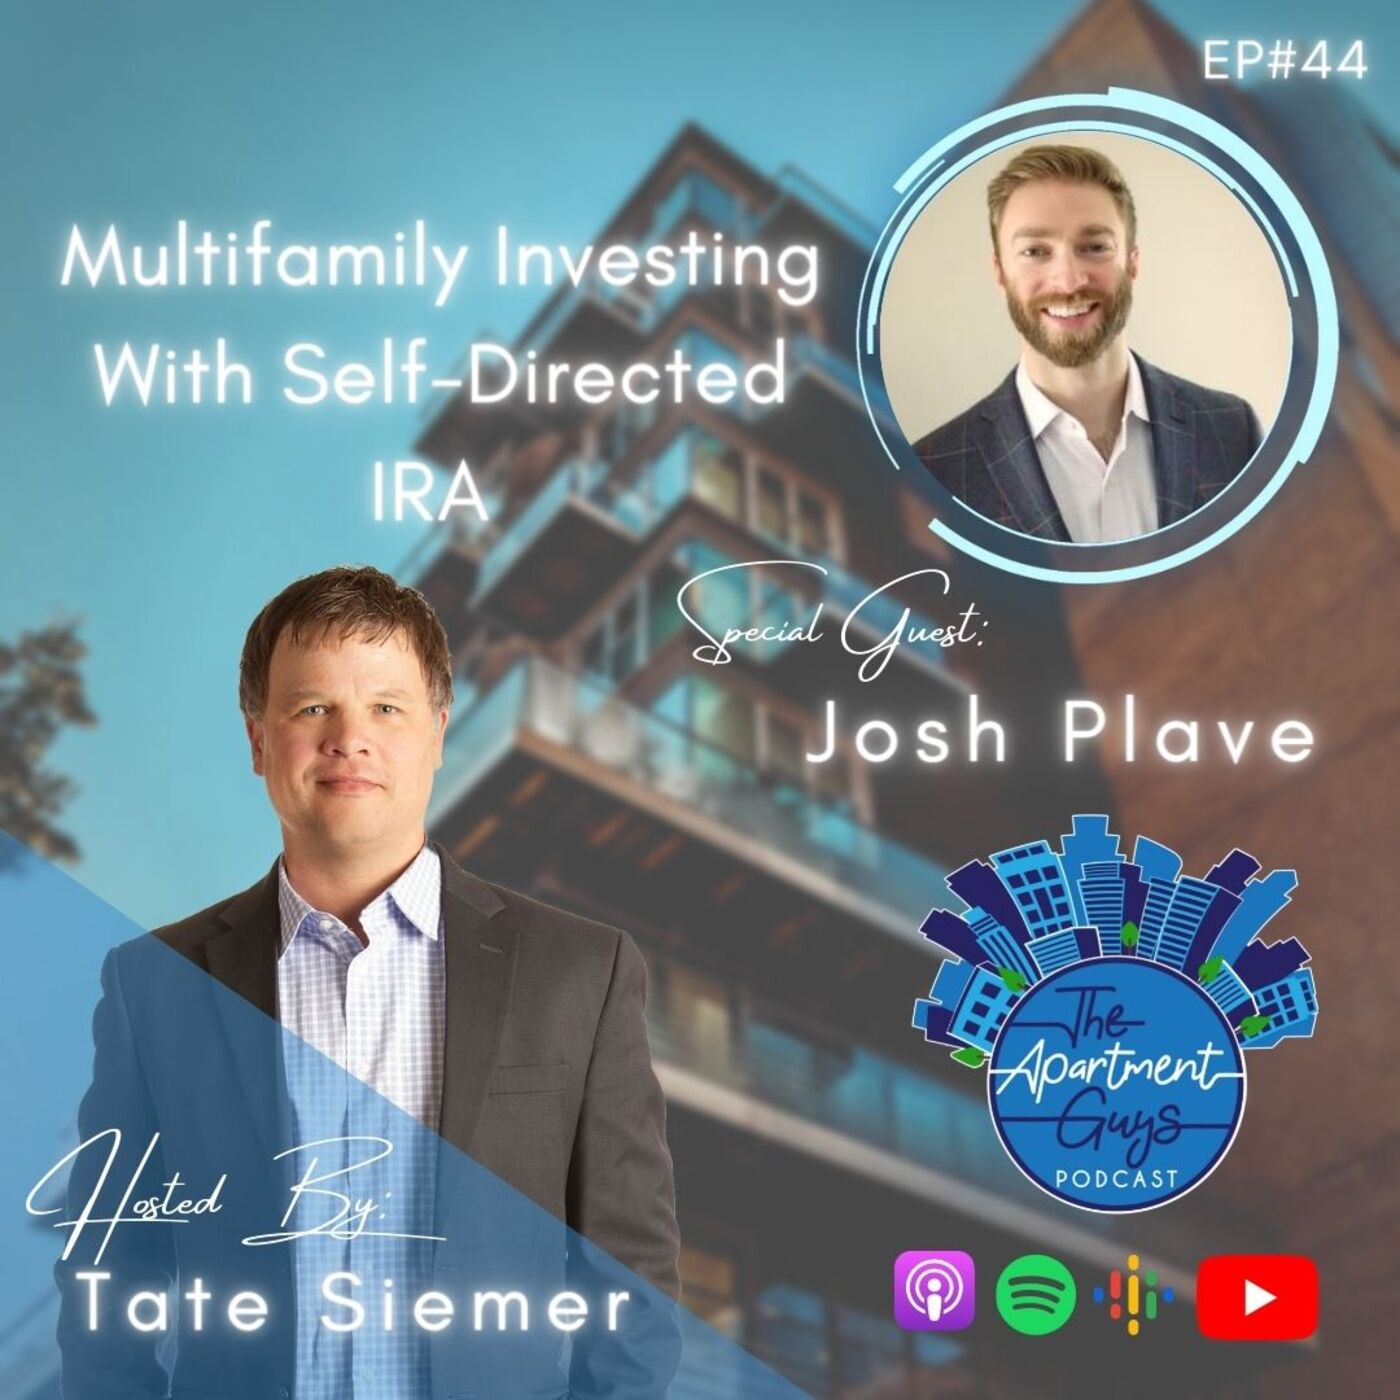 Episode 044: Josh Plave - Multifamily Investing With Self-Directed IRA